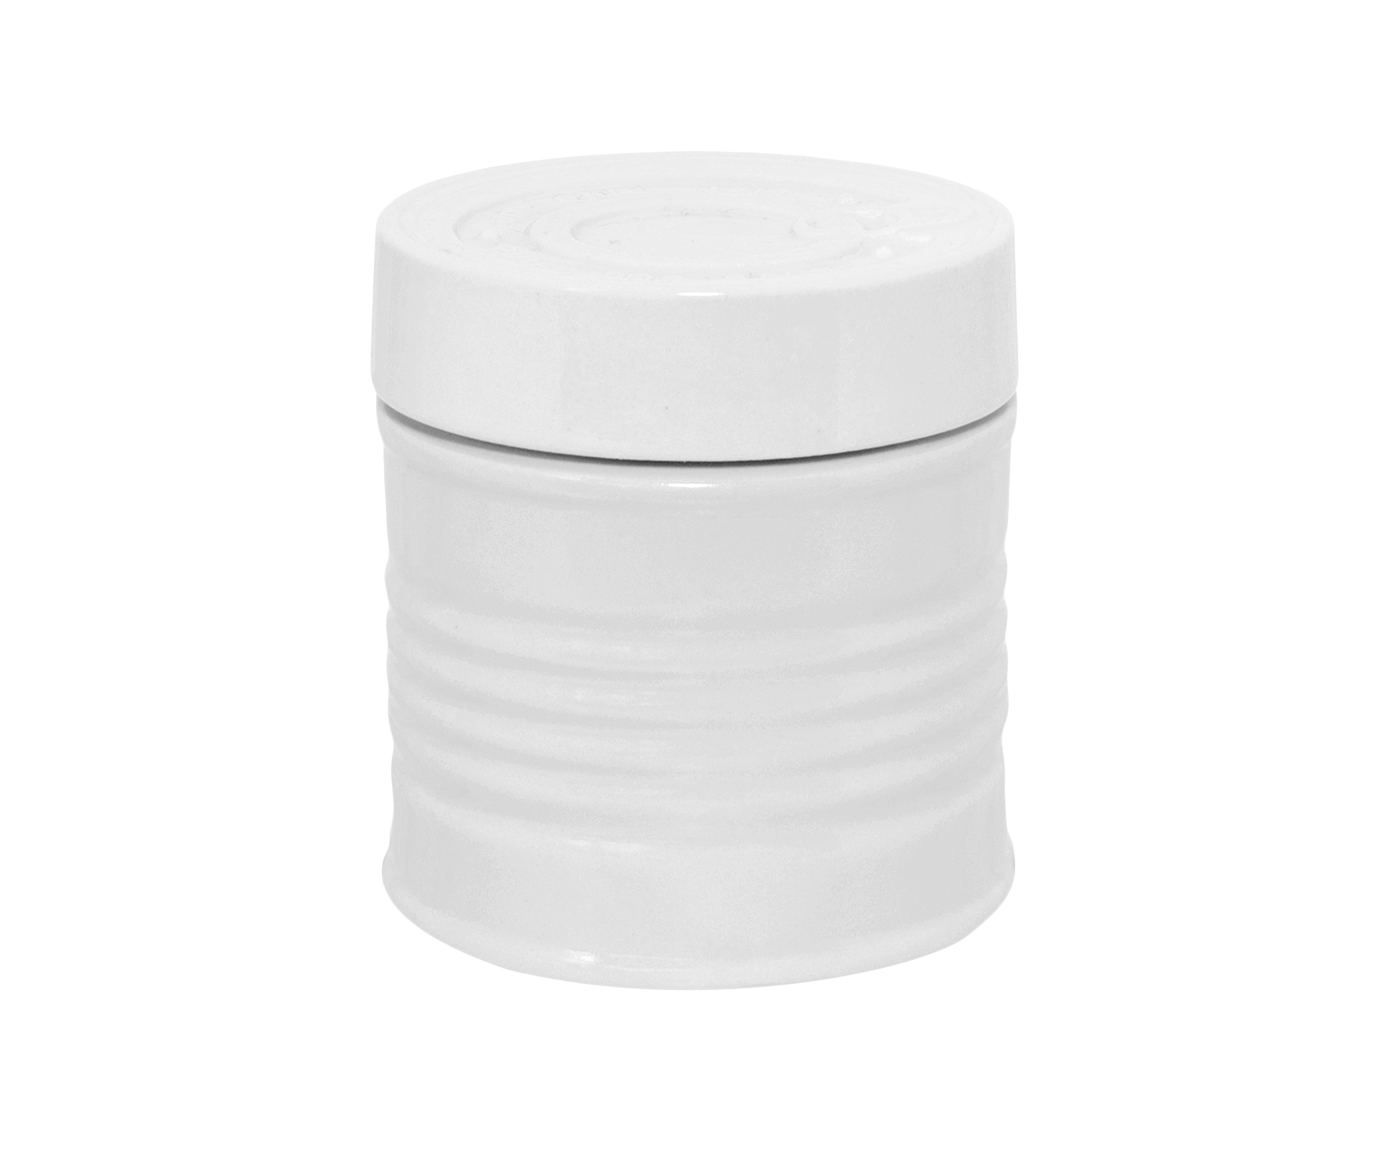 Pote Can Lata Branco - 700 ml | Westwing.com.br